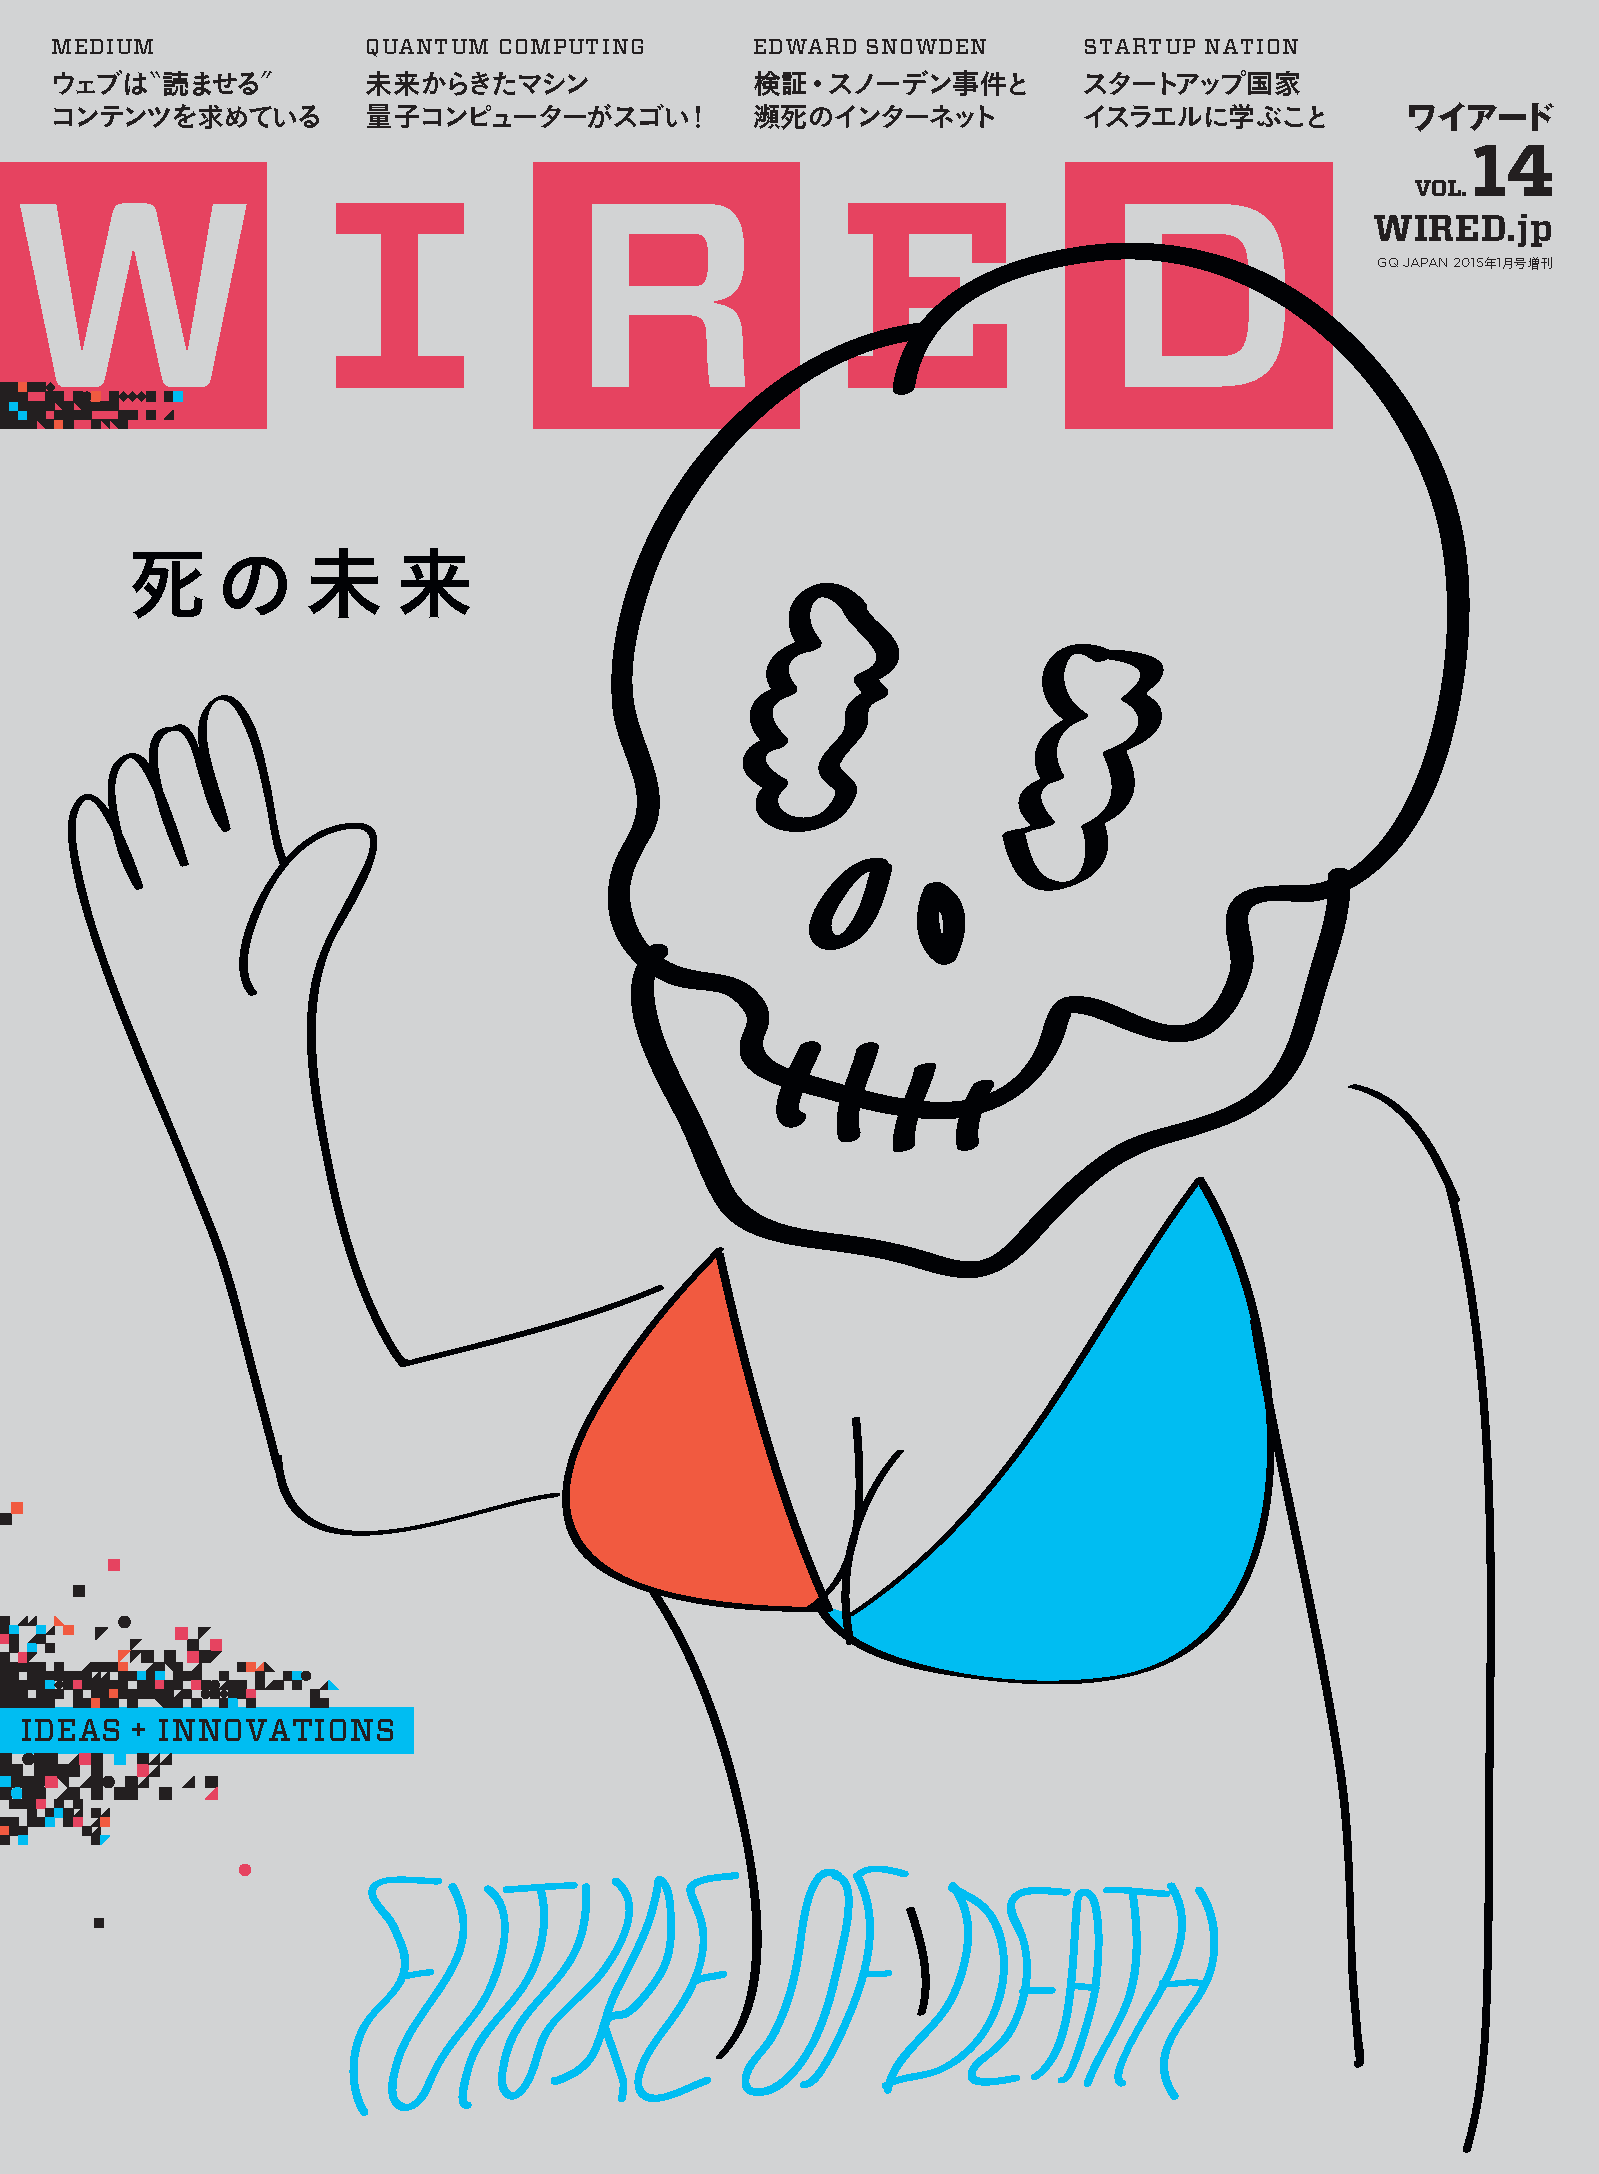 WIRED_VOL.14_cover